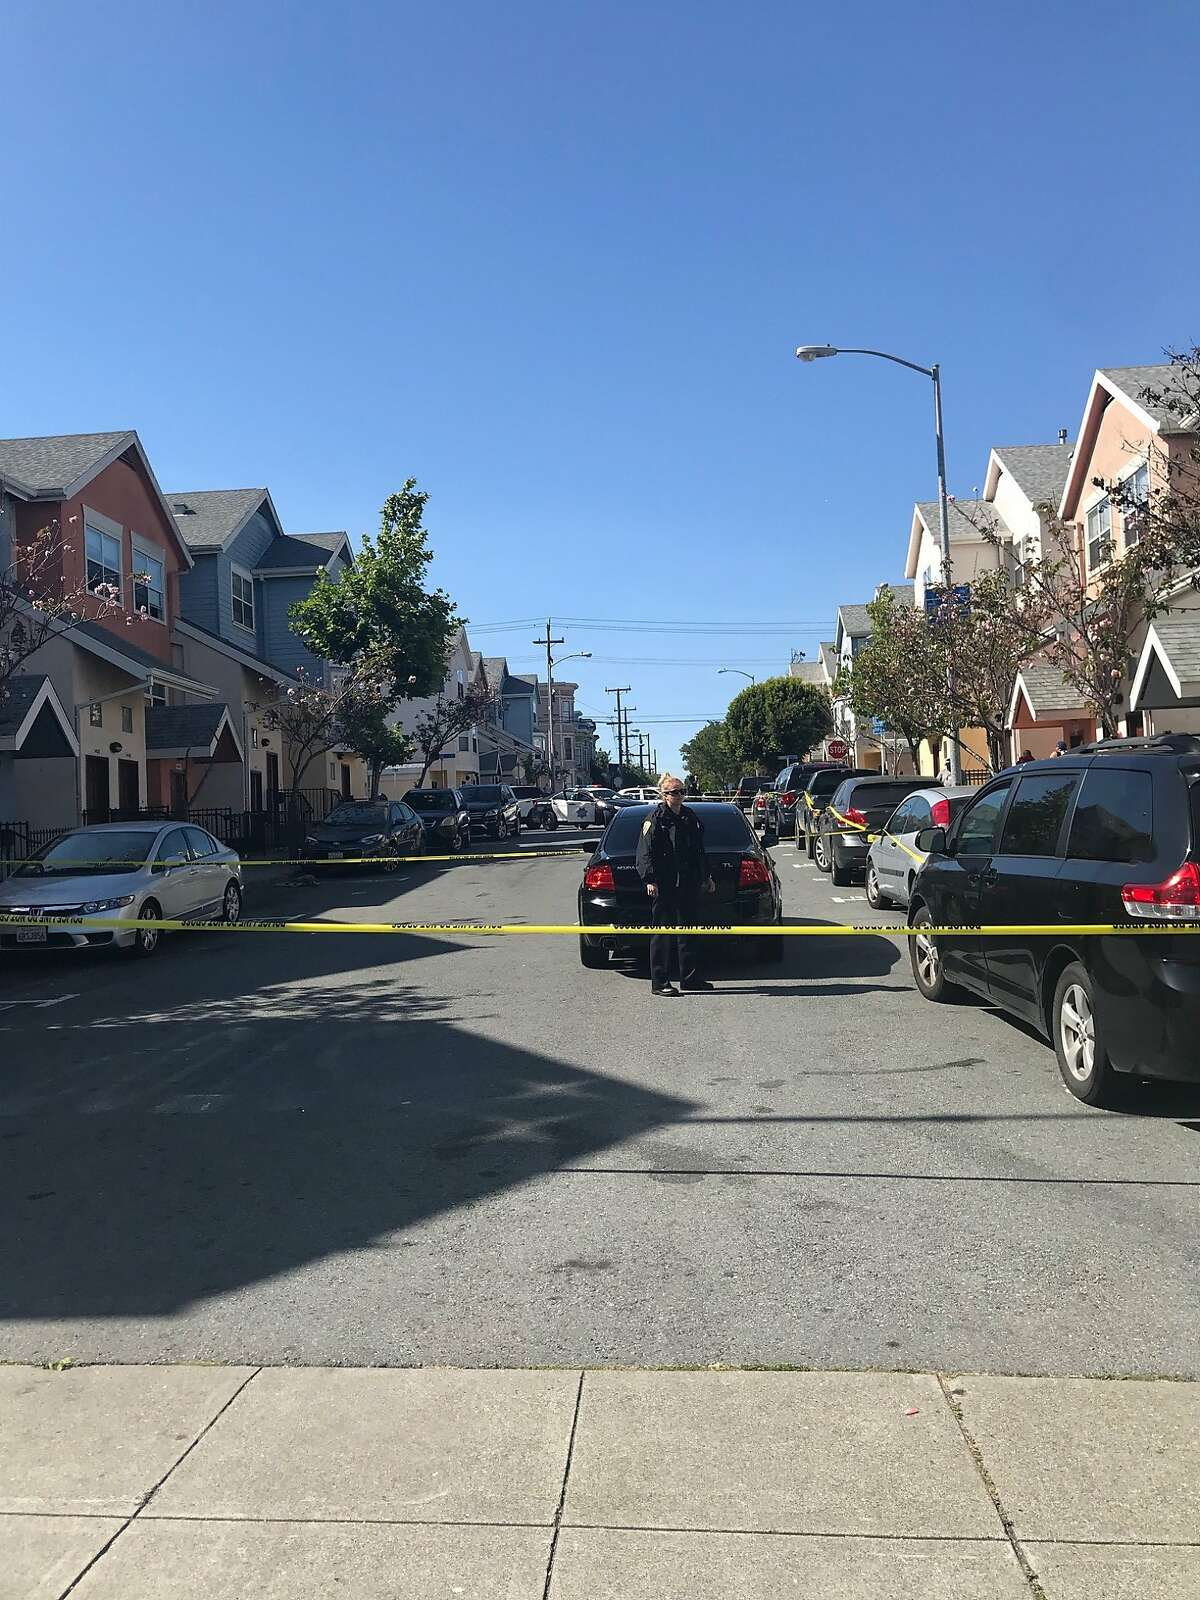 San Francisco police taped off Treat Avenue after police say someone shot two people here on June 7, 2018.